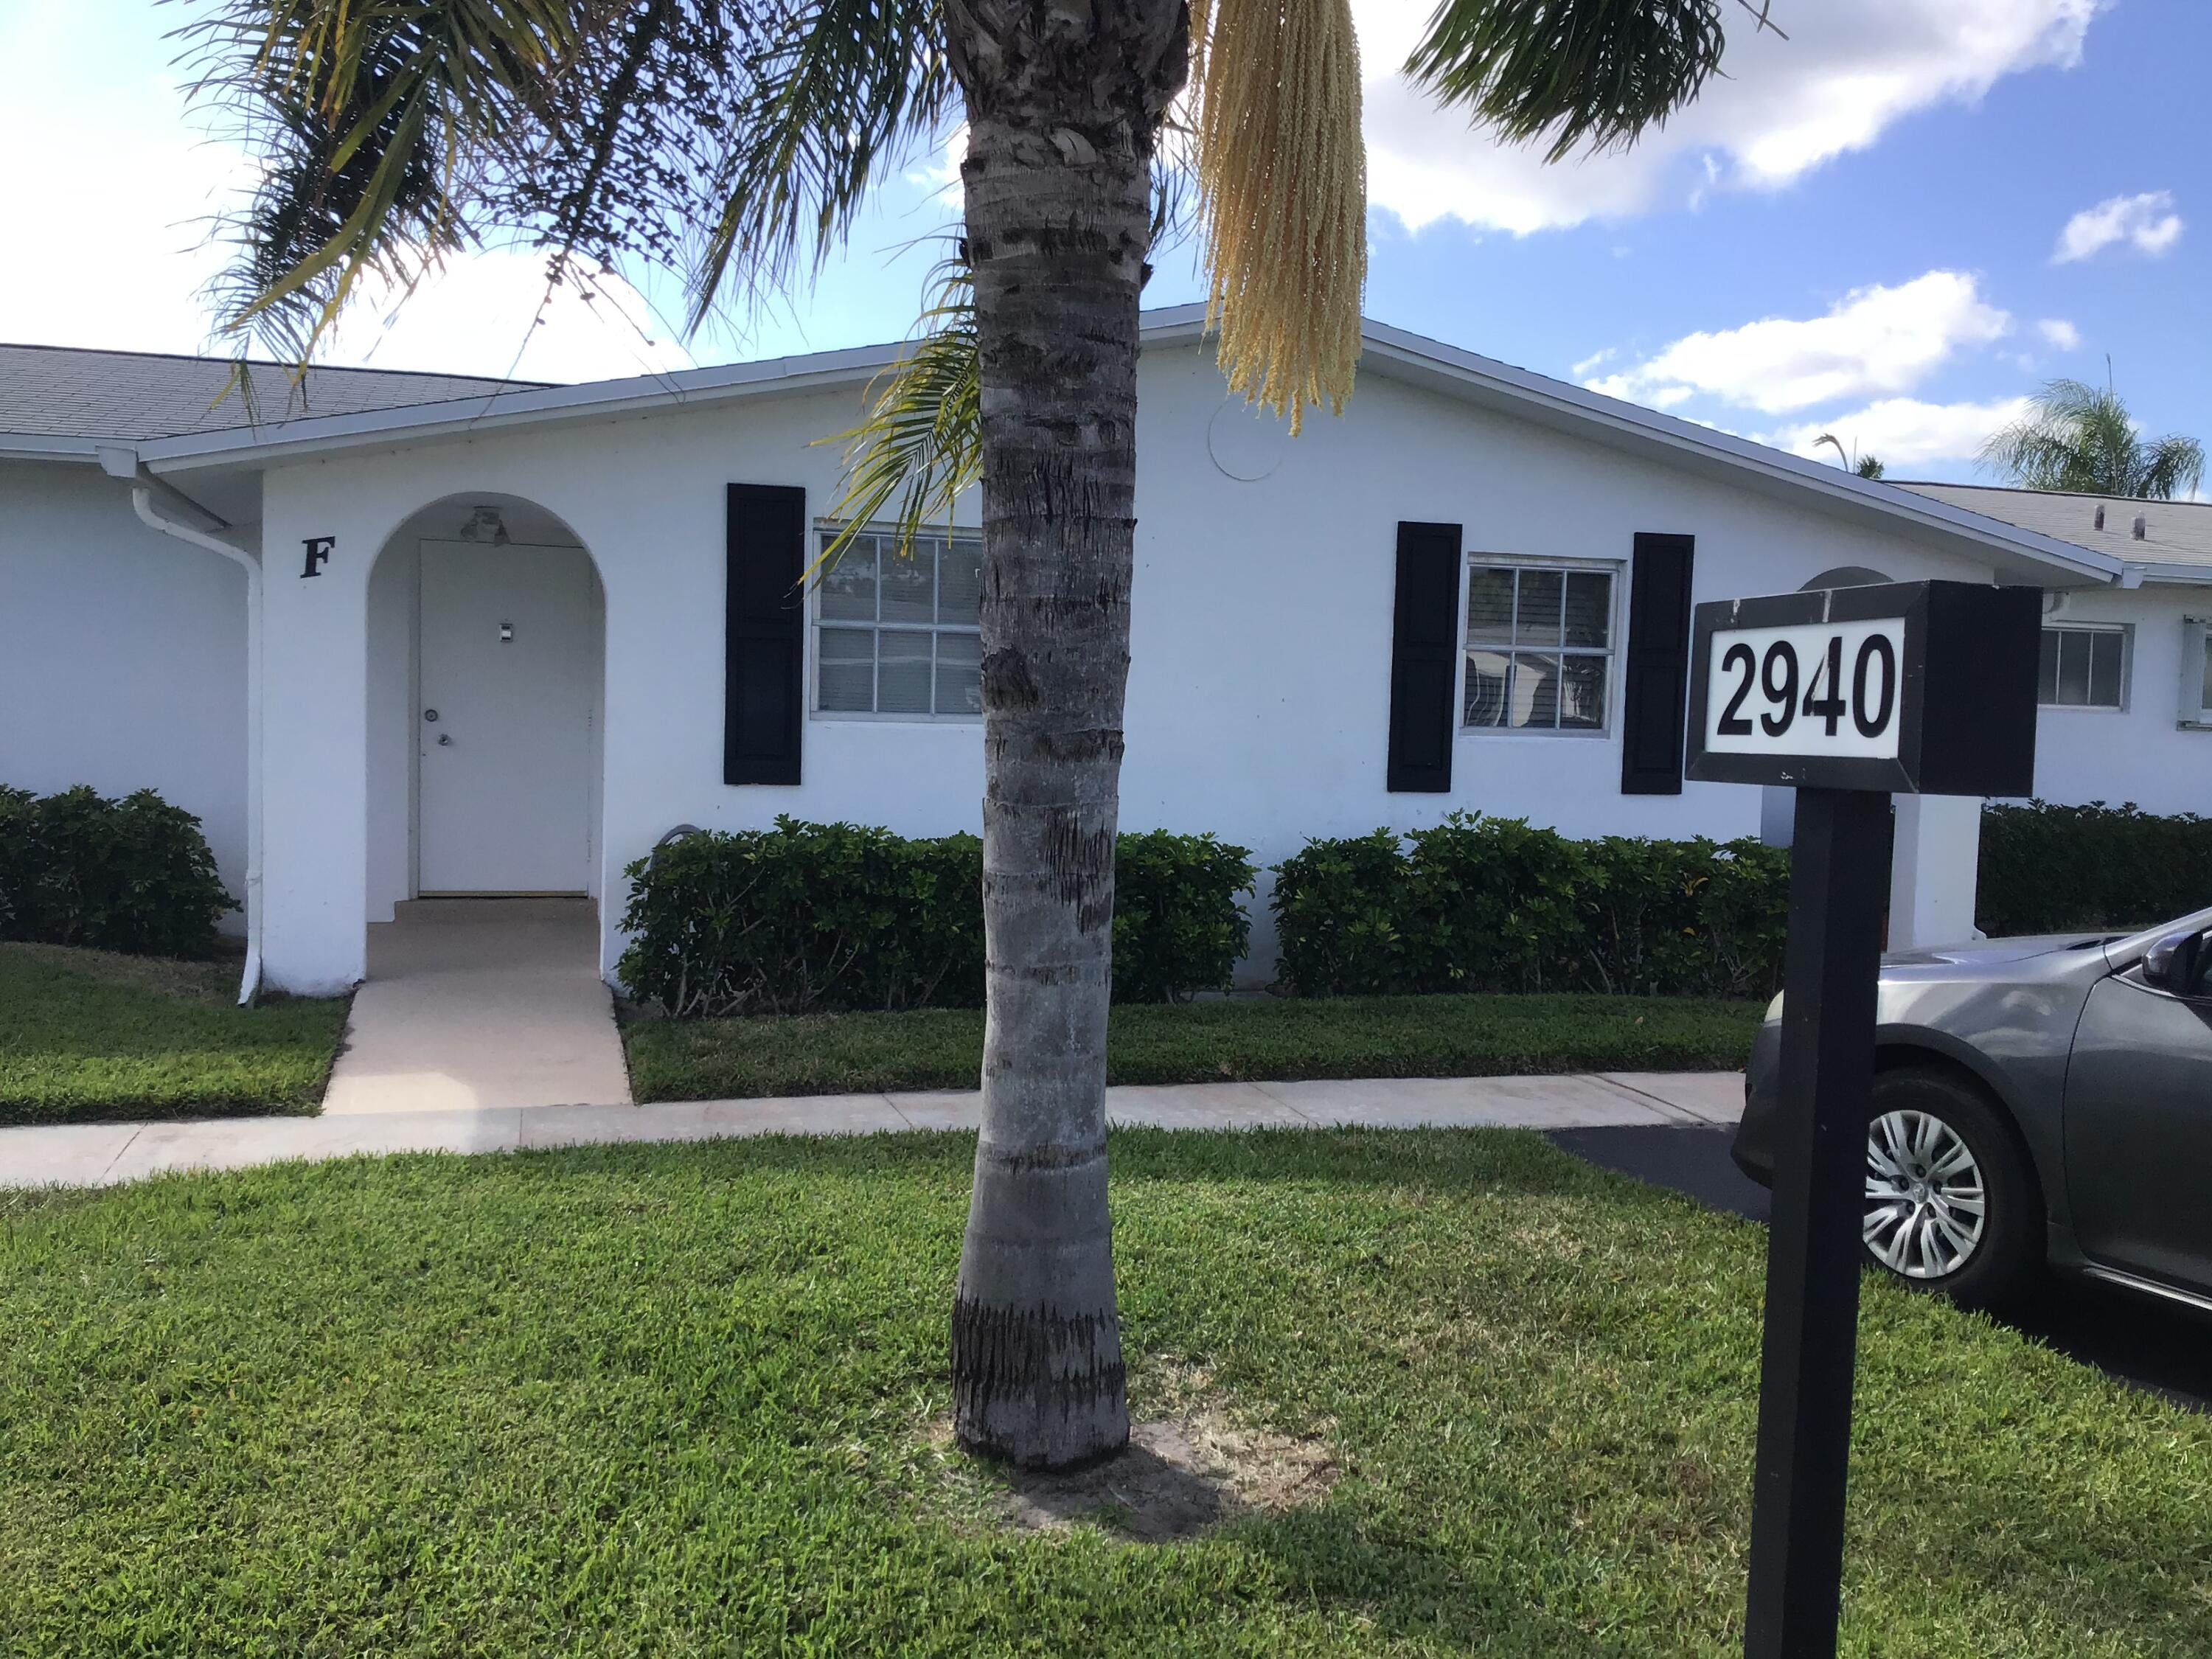 Photo of 2940 E Crosley Drive E #F, West Palm Beach, FL 33415